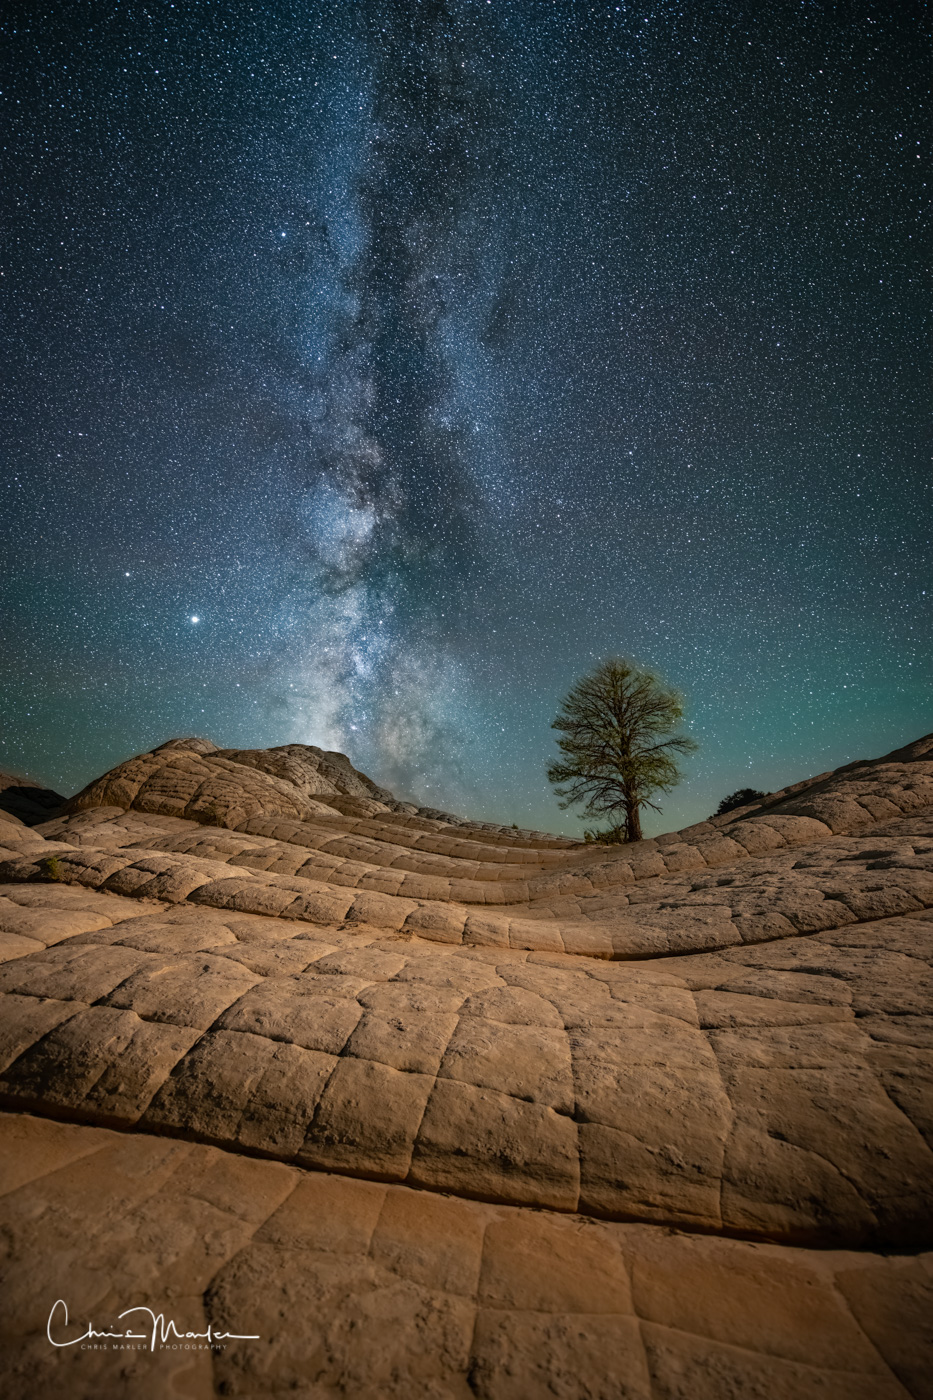 These Navajo Sandstone rock ledges at White Pocket Arizona lead you to the top of a ridge and this lone pine tree.  The Milky...